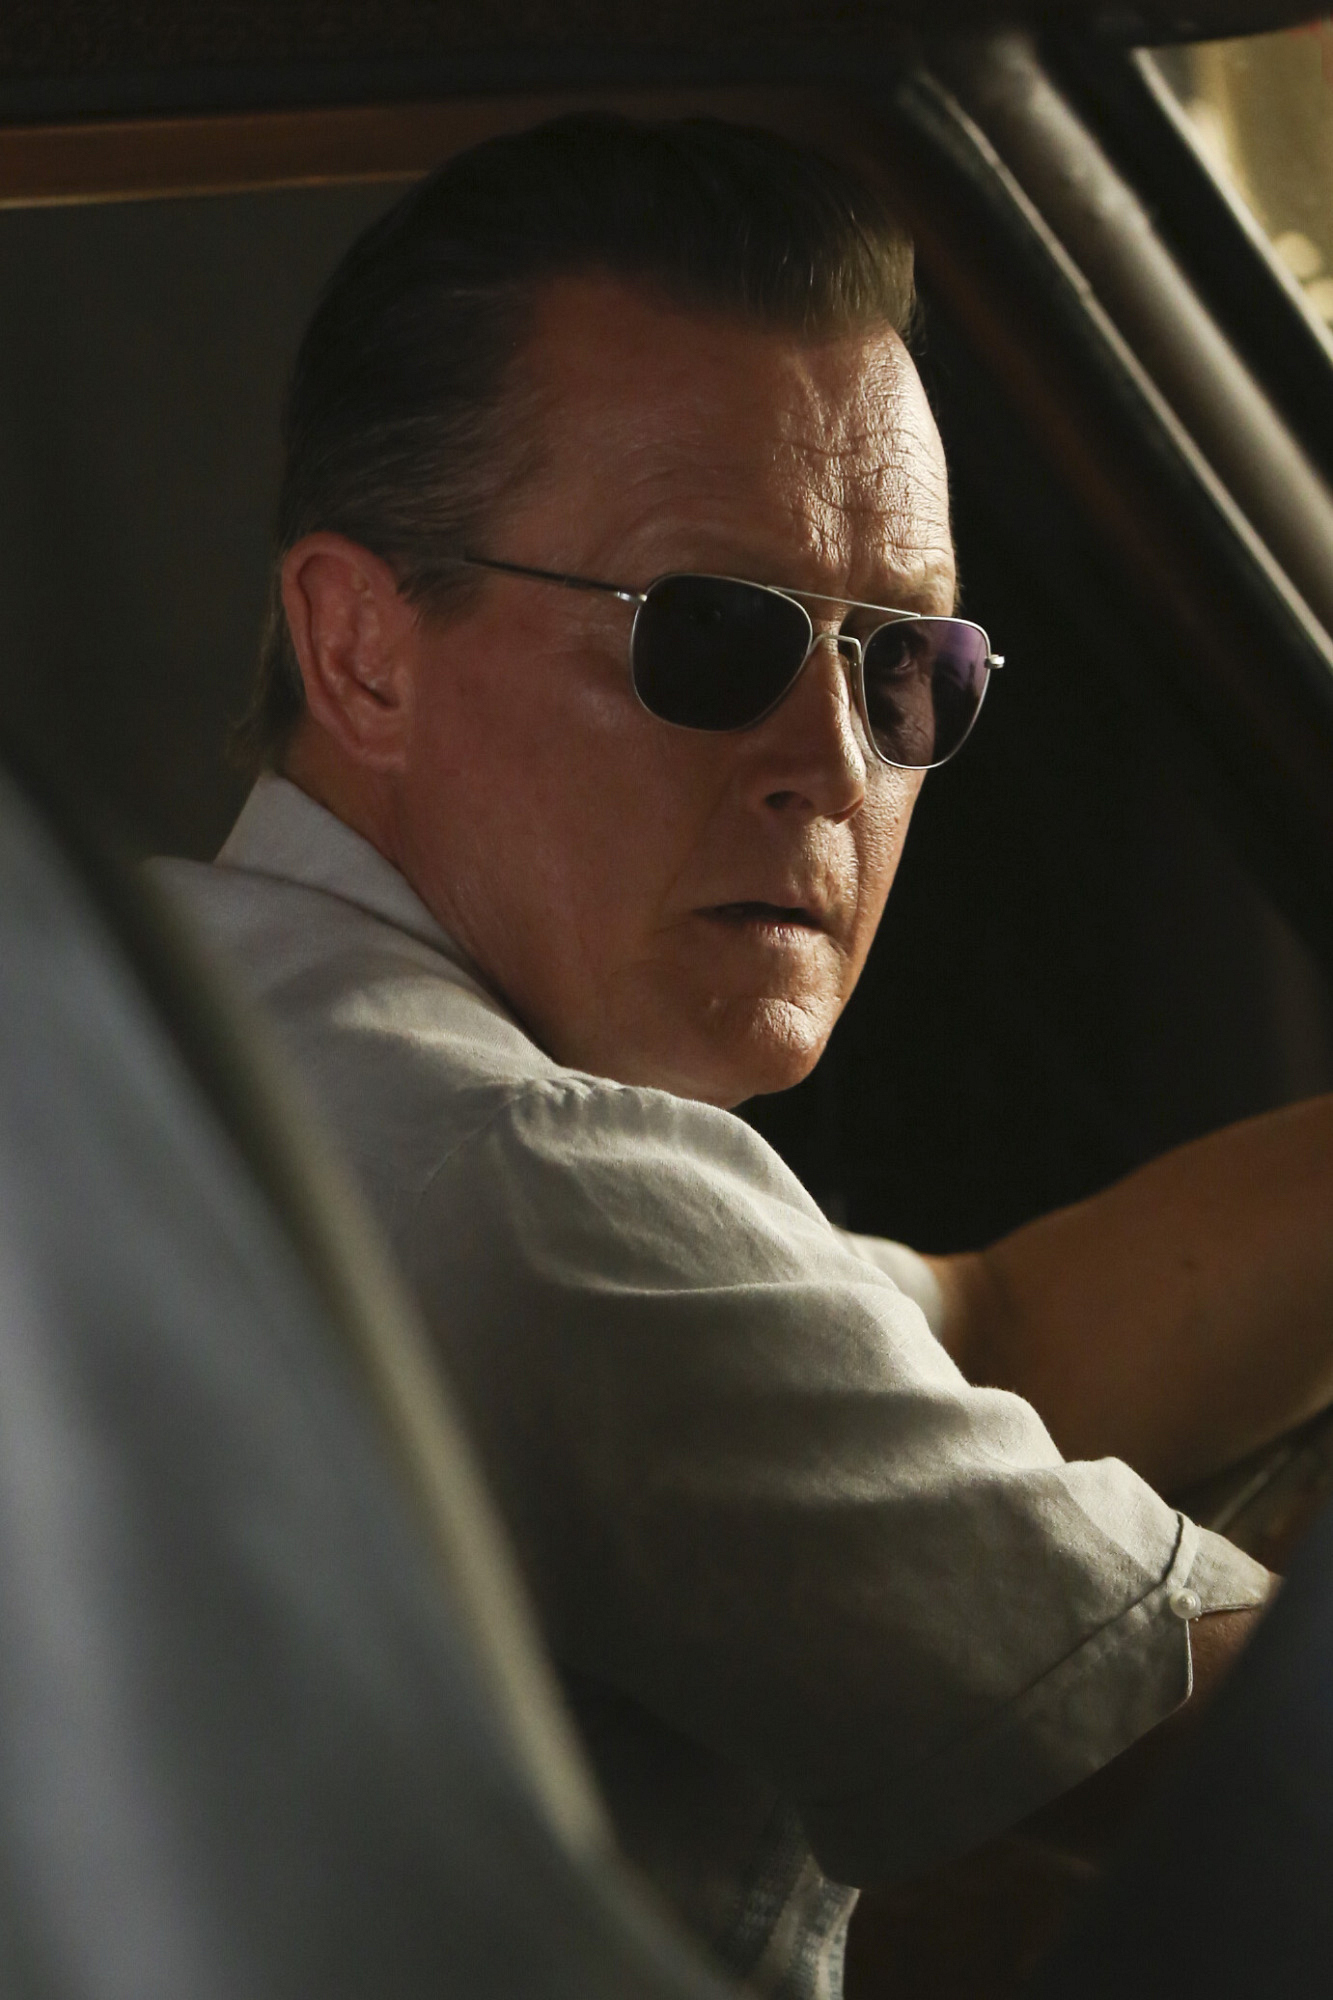 Robert Patrick as Agent Cabe Gallo